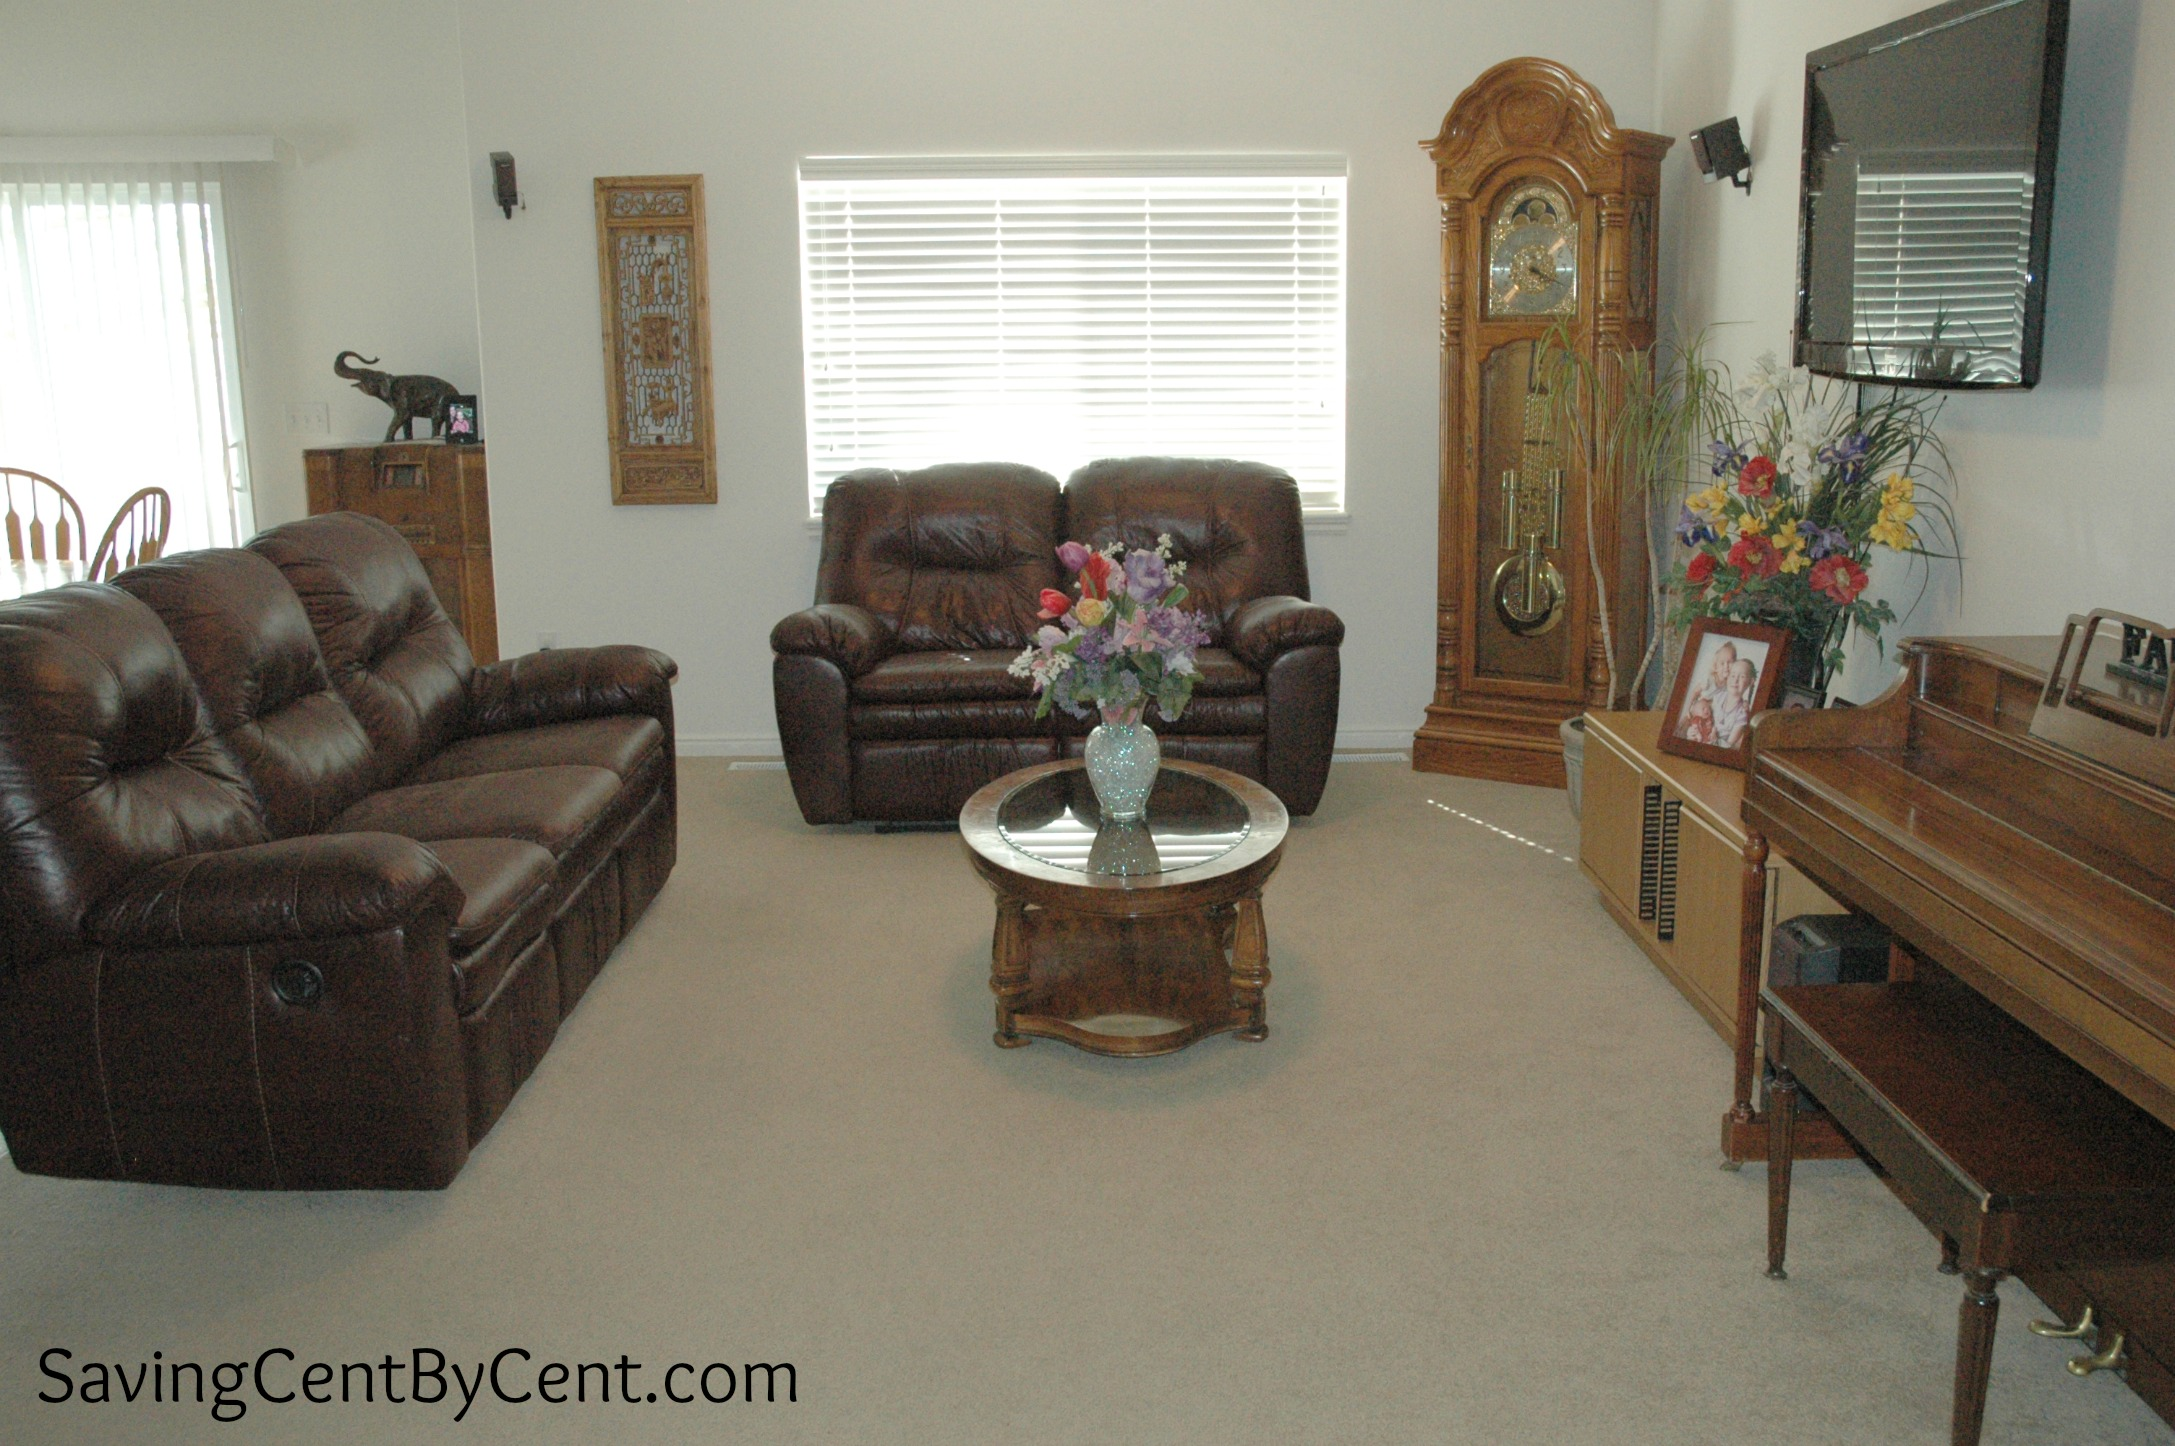 9 Steps to Spring Clean the Living Room - Saving Cent by Cent